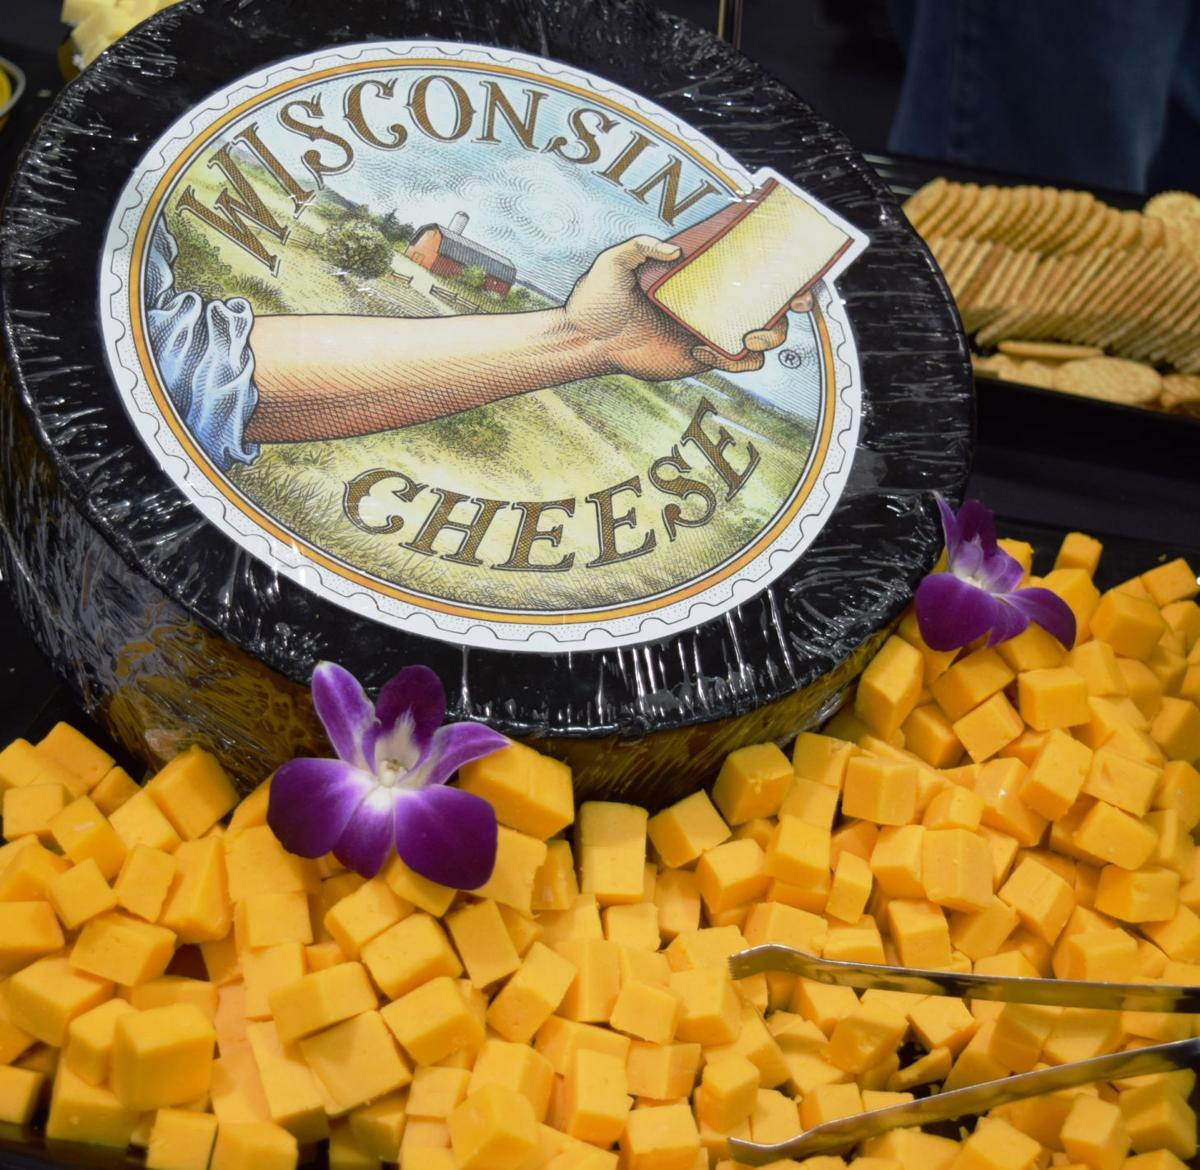 Wisconsin Cheese wheel and cheese cubes